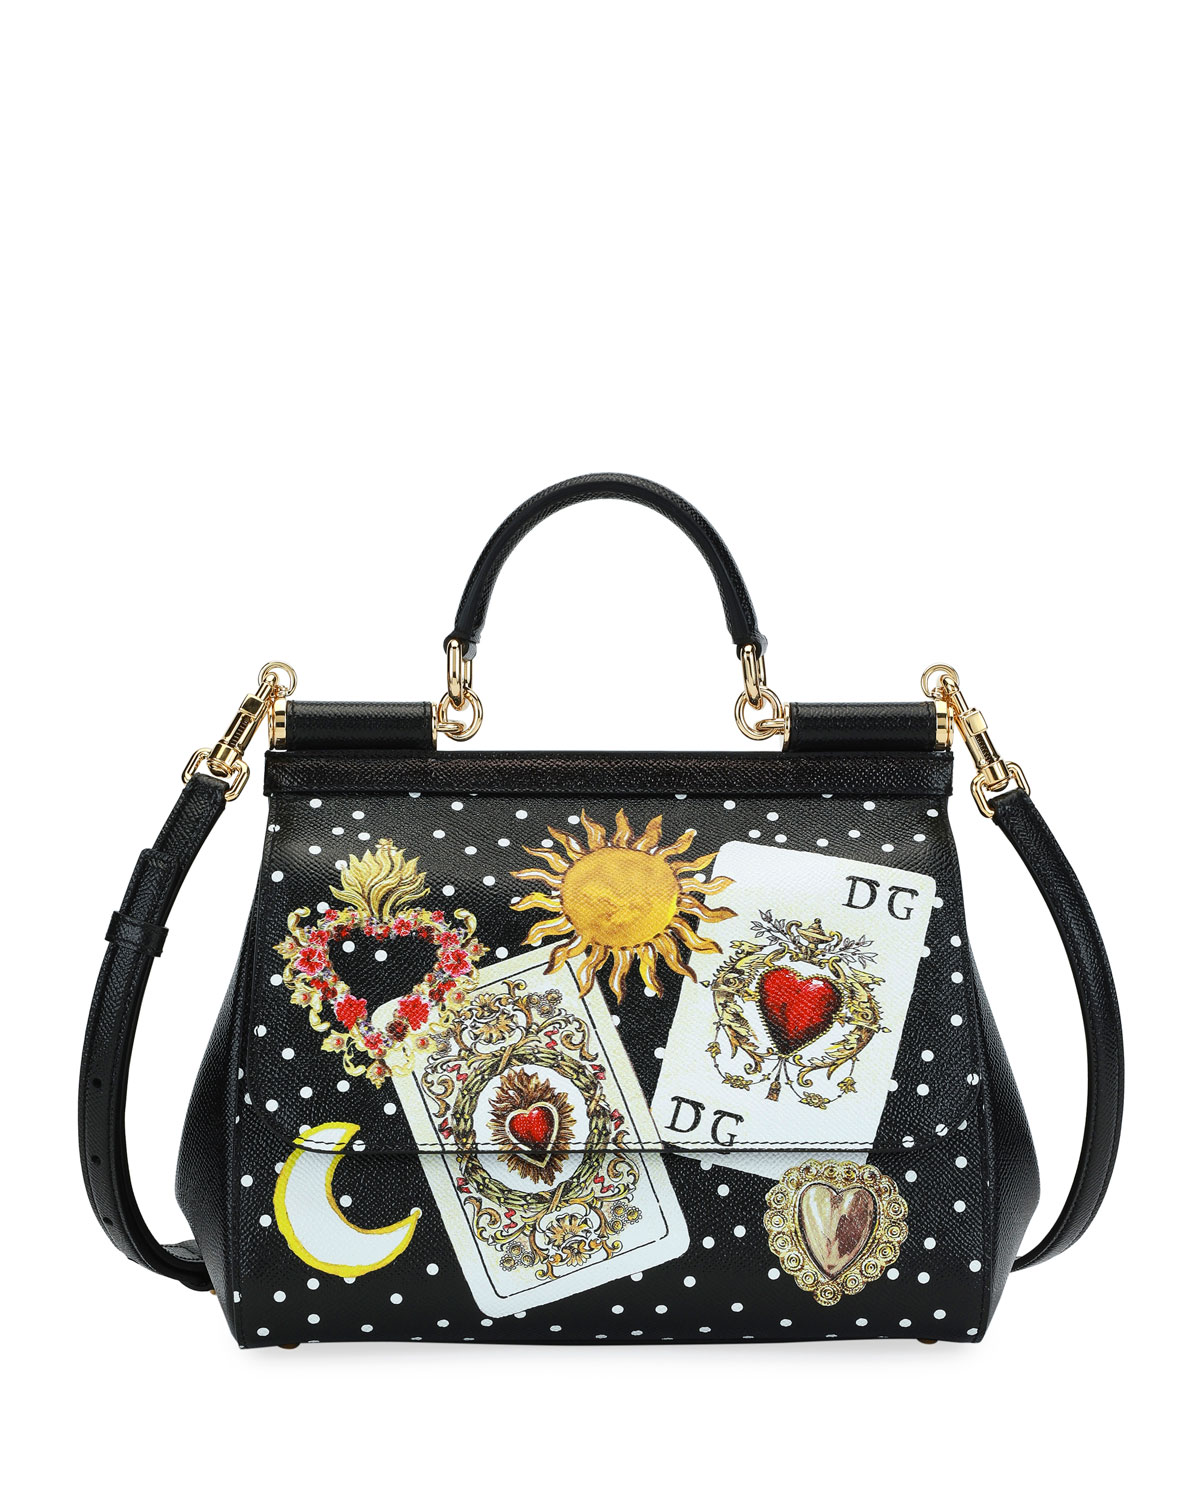 cc1b823aef87 Dolce   Gabbana Sicily St. Dauphine Stampata Top Handle Bag